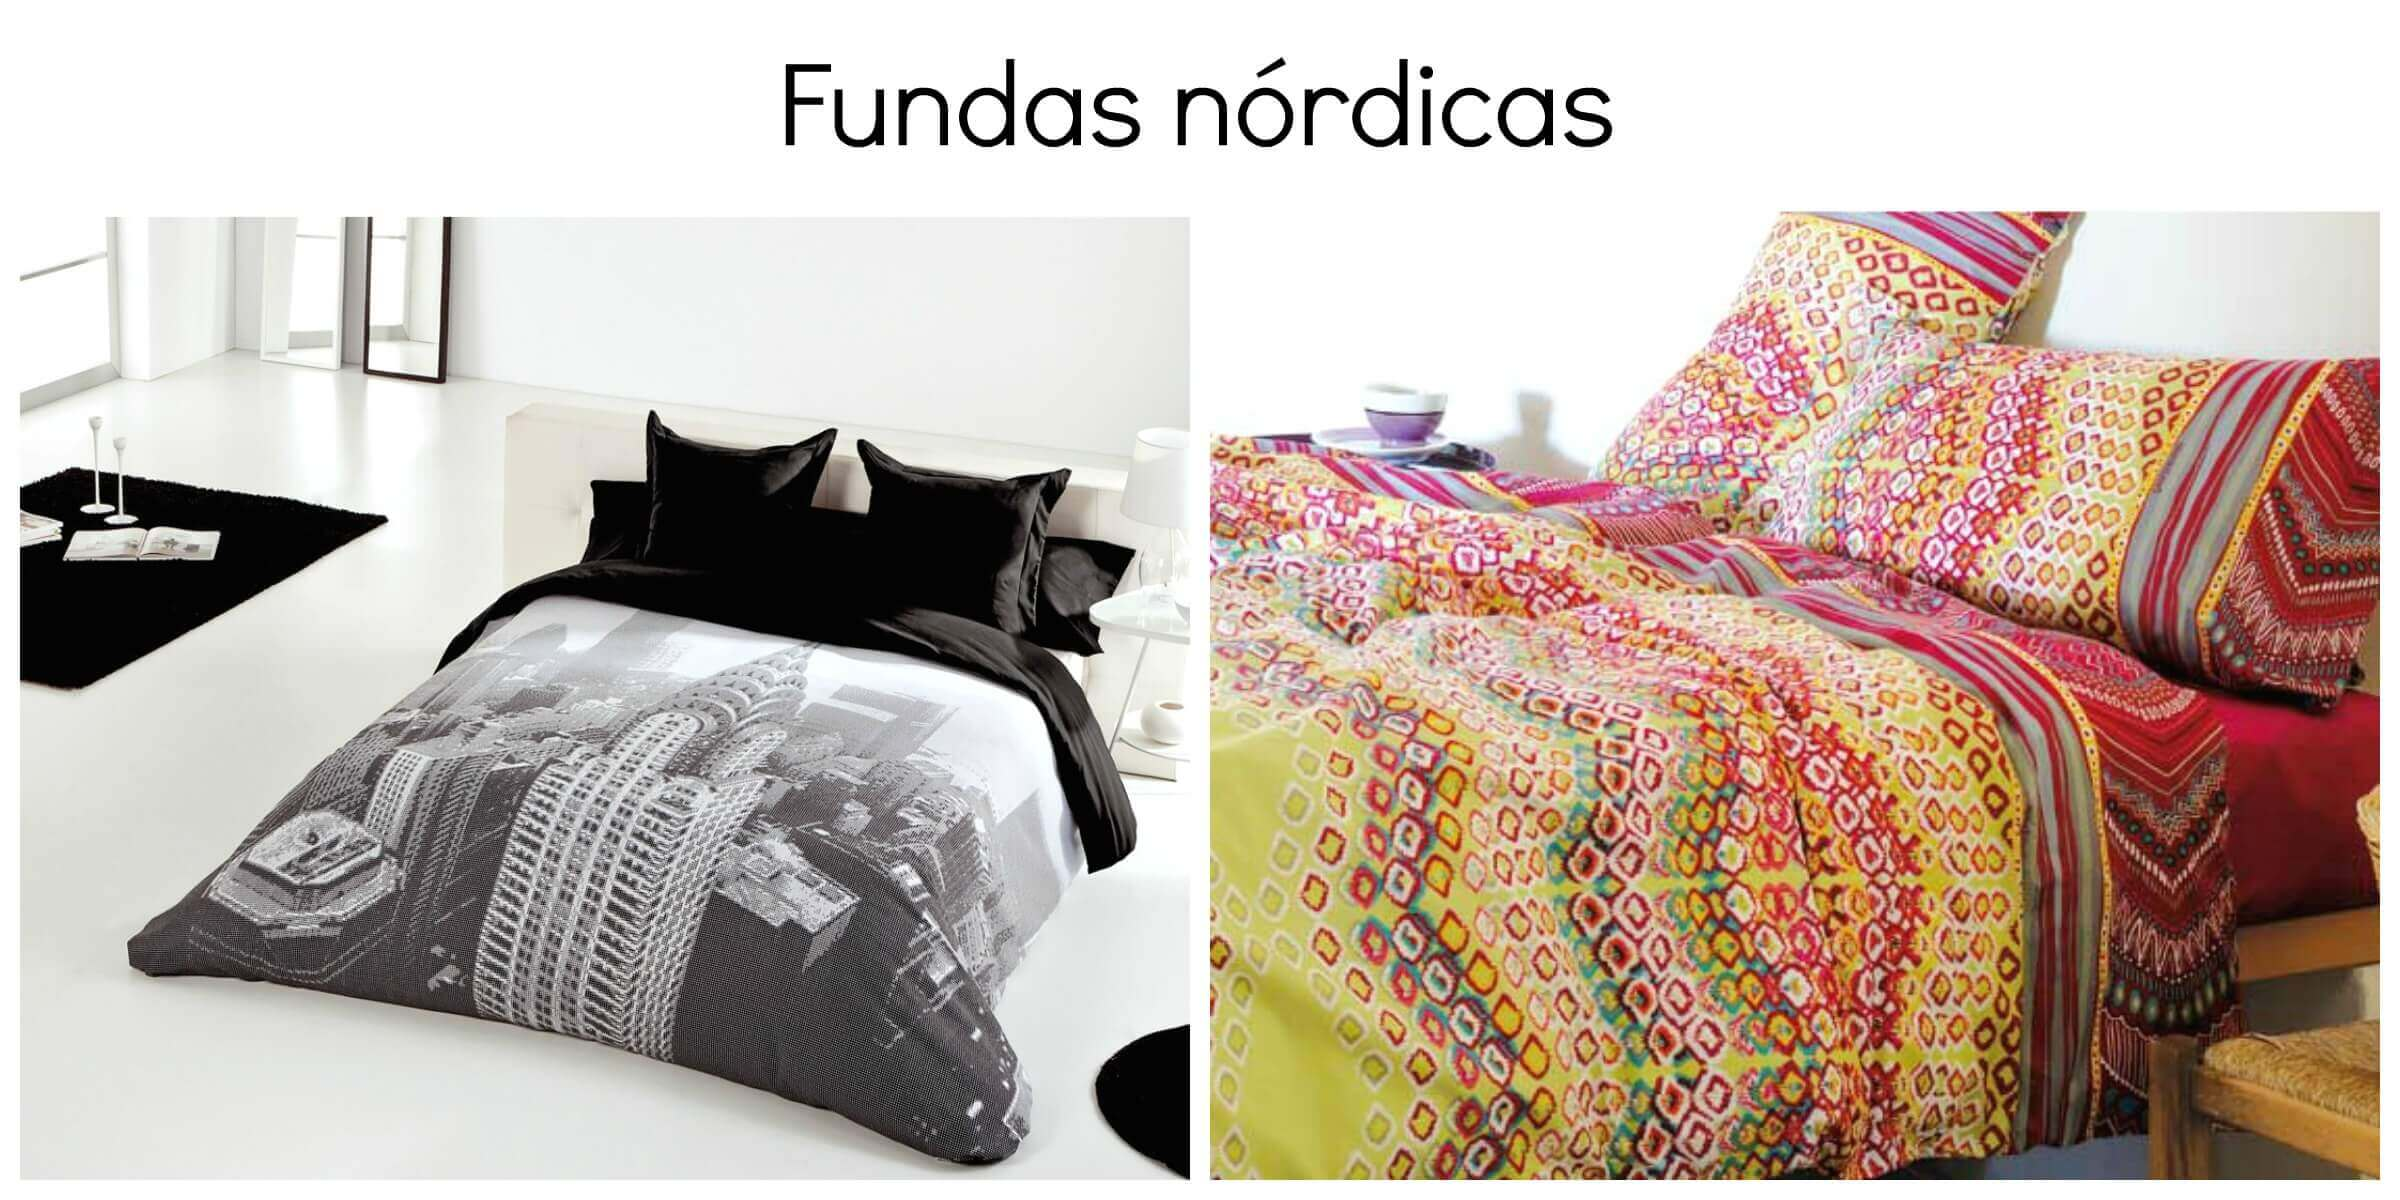 fundas_nordicas_cortinasymas